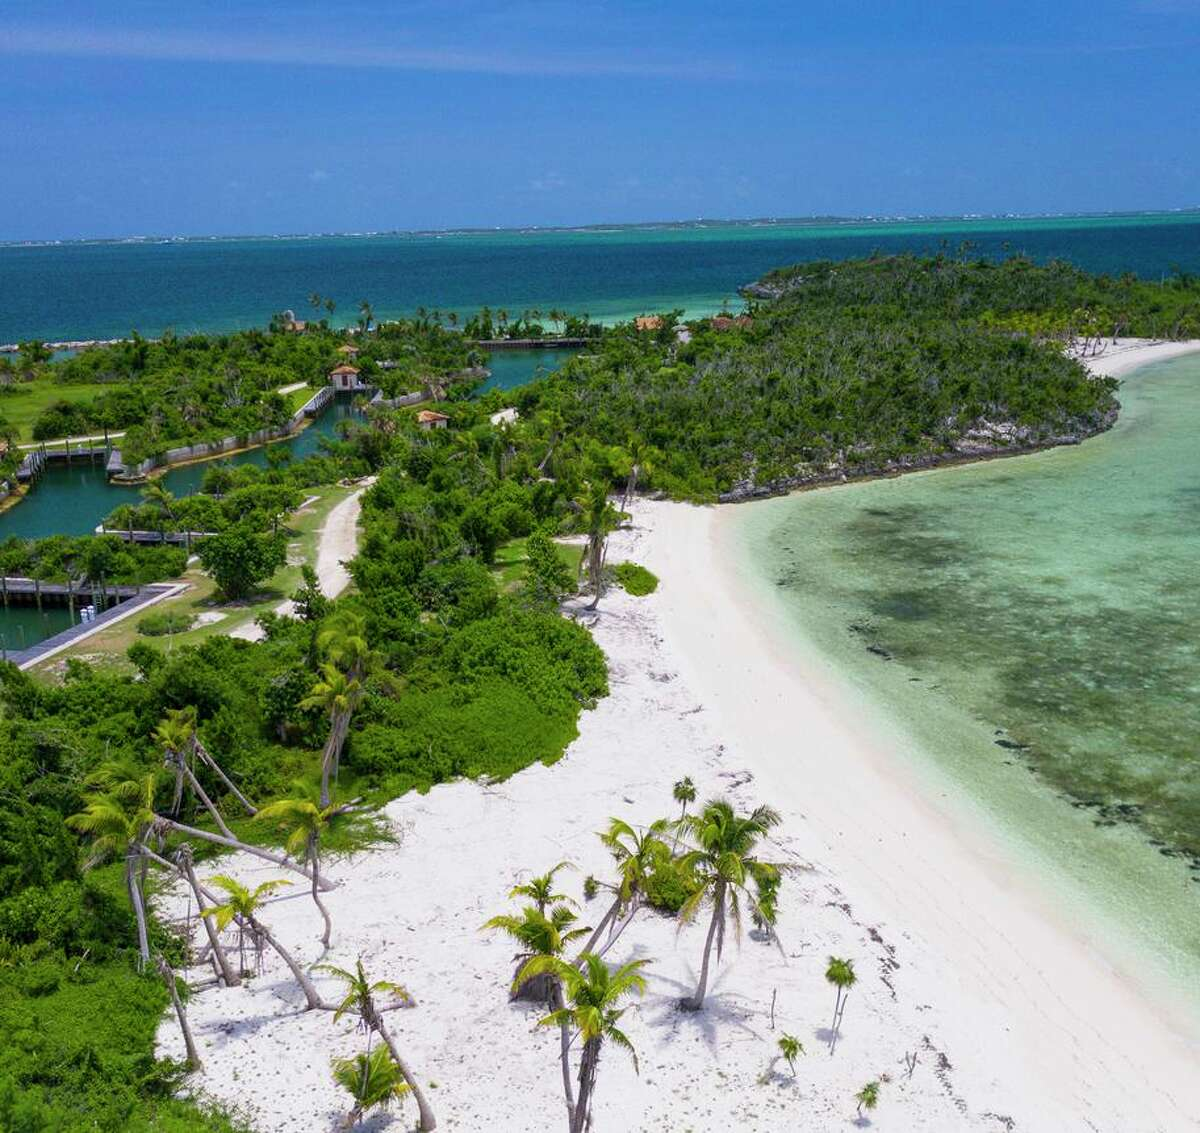 Montage Cay, a luxury resort that will be completed in 2023, will rest along the Sea of Abaco in the Bahamas.